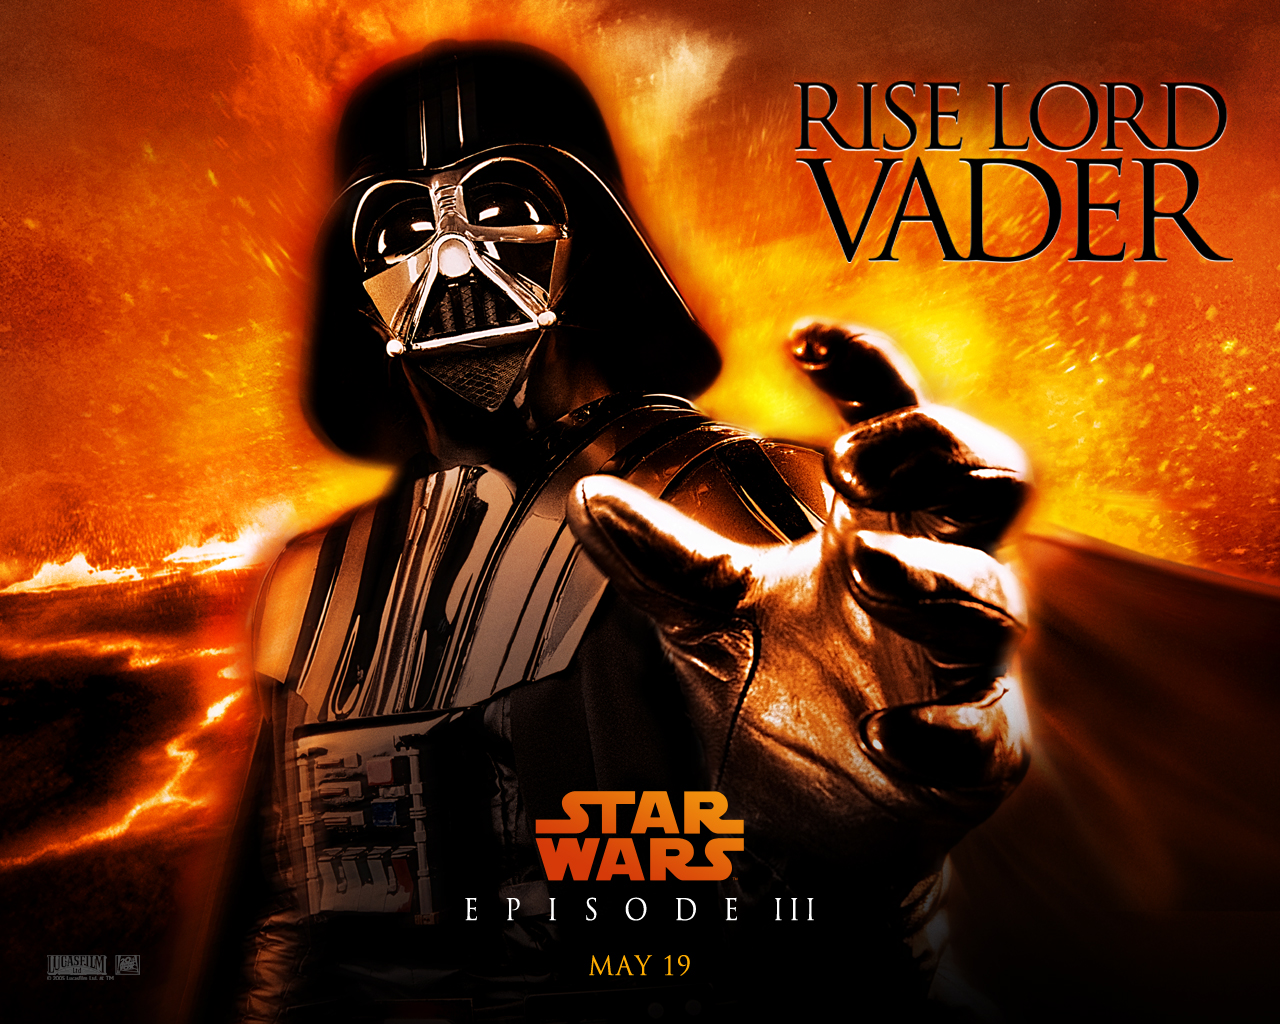 http://4.bp.blogspot.com/-wqim3IRrKTI/UMqij0y4iKI/AAAAAAAASlY/8lxE5U3e1qE/s1600/Hayden_Christensen_in_Star_Wars-_Episode_III_-_Revenge_of_the_Sith_Wallpaper_2_1280.jpg